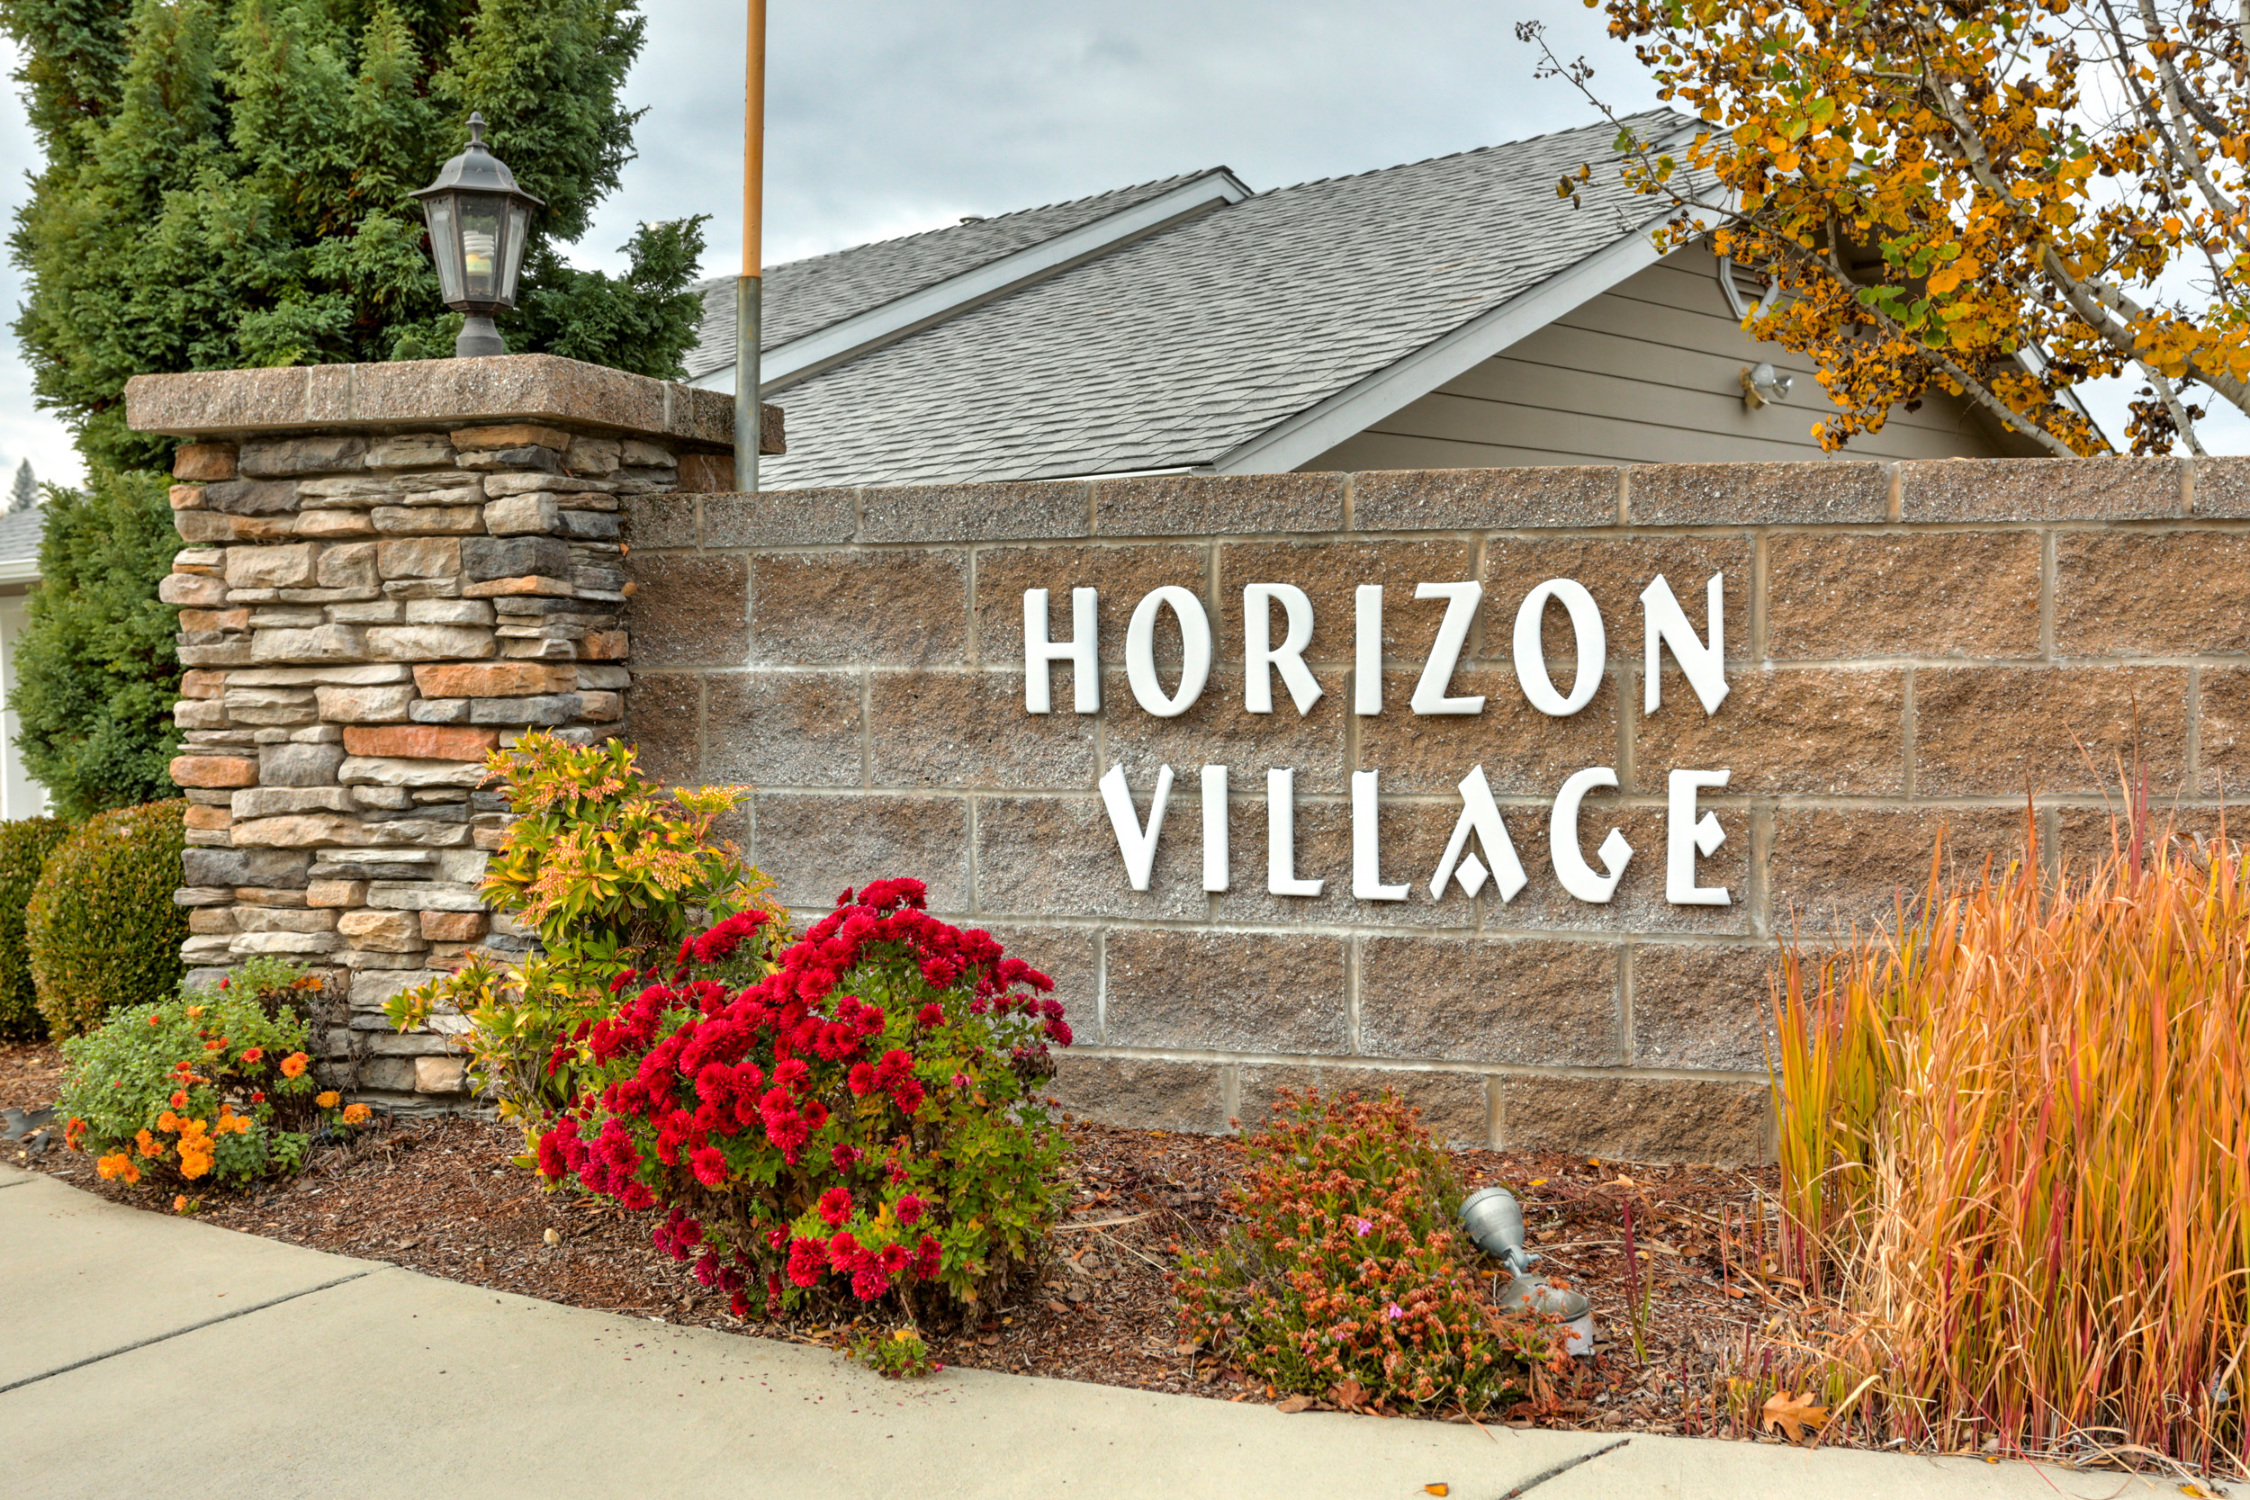 Horizon Village Entrance